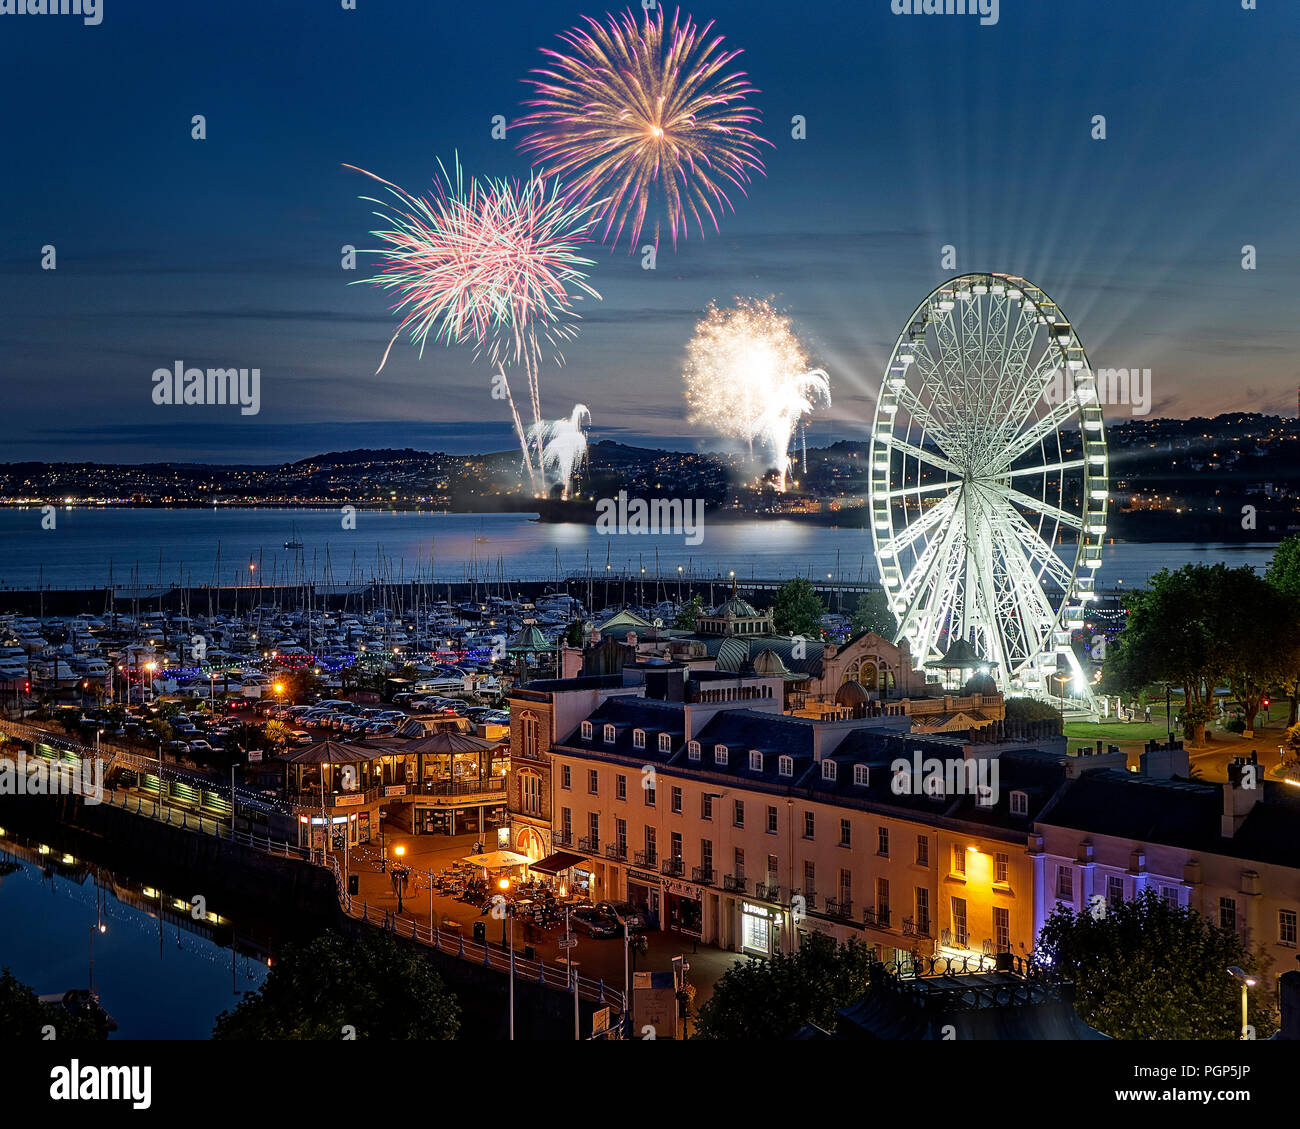 Go - DEVON : Fireworks sur Torquay Photo Stock